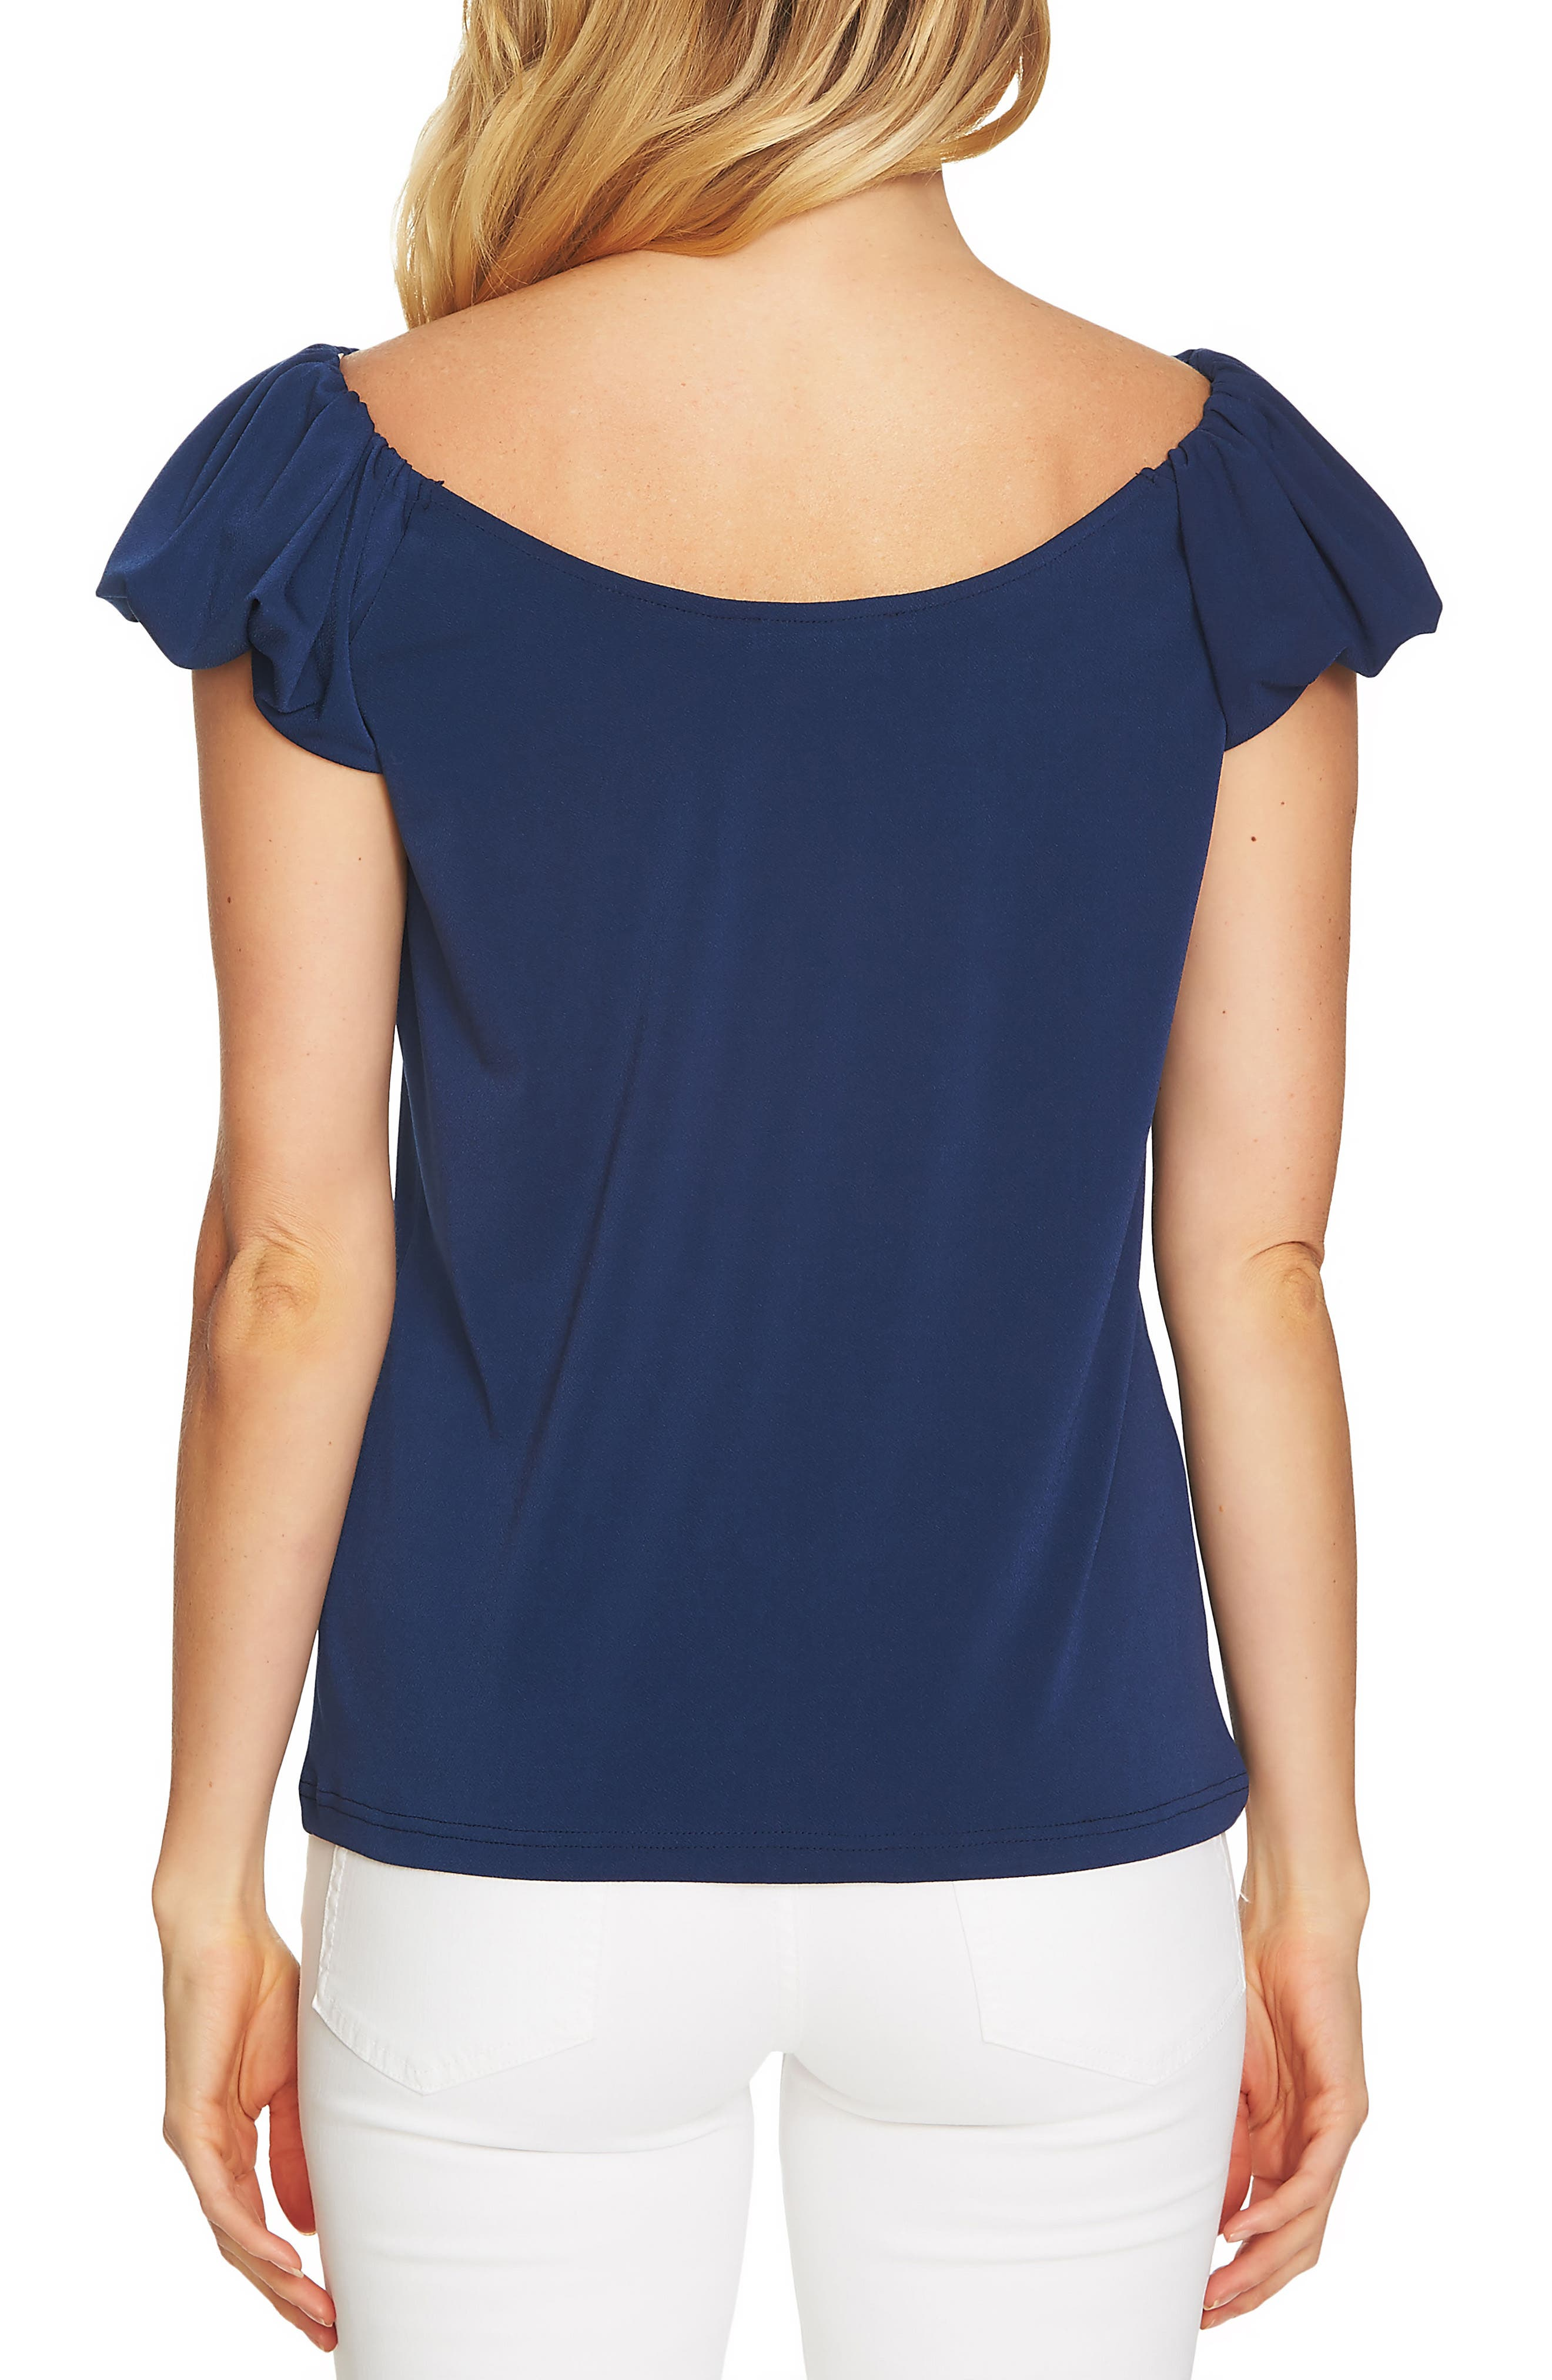 Puffed Short Sleeve Top,                             Alternate thumbnail 2, color,                             Naval Navy